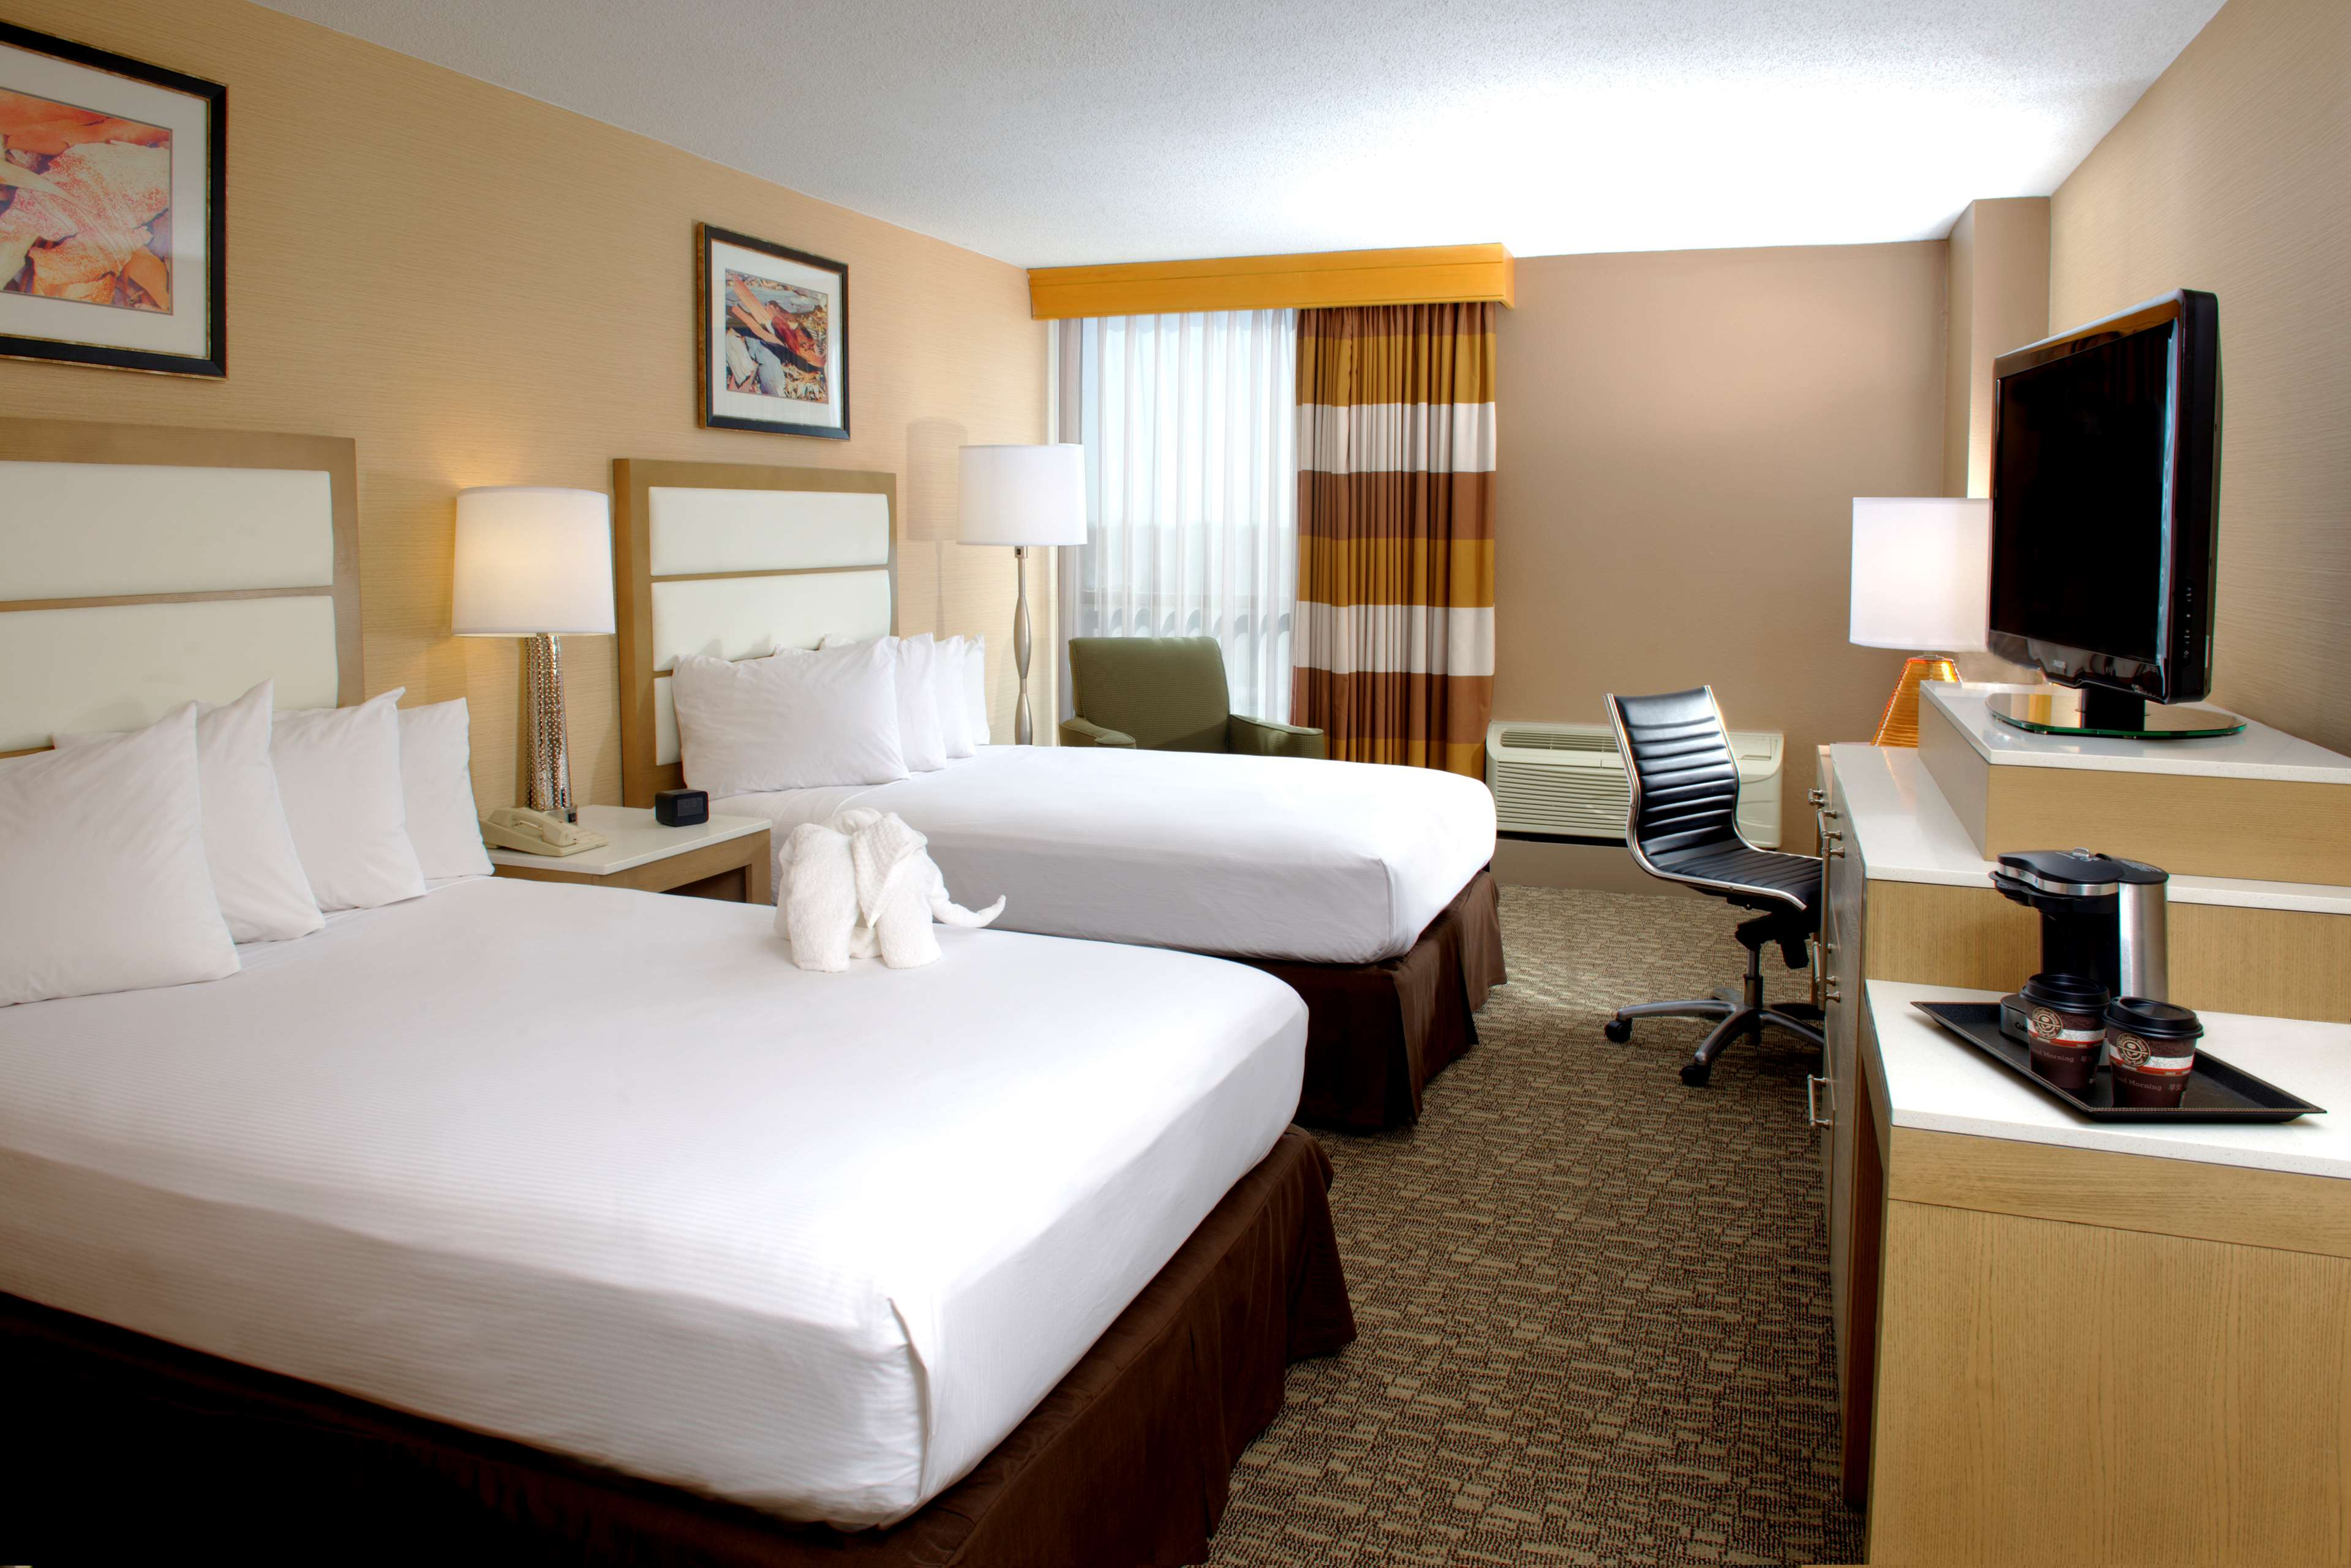 DoubleTree by Hilton Hotel Virginia Beach image 23